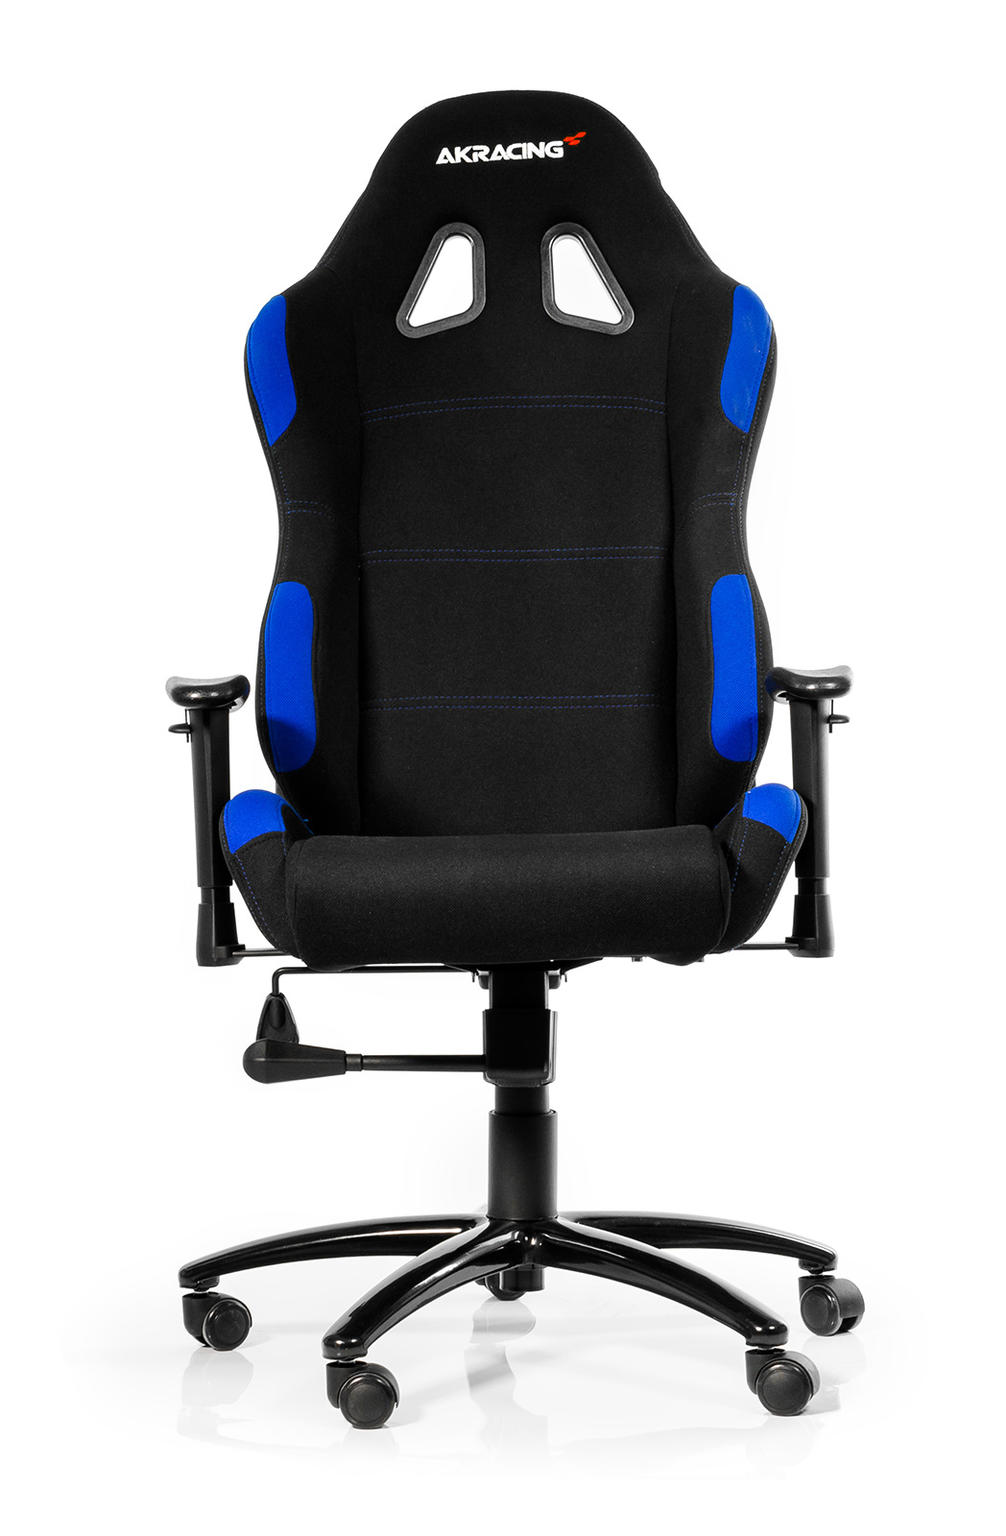 Gaming stoel AKRACING Gaming Chair zwart-blauw